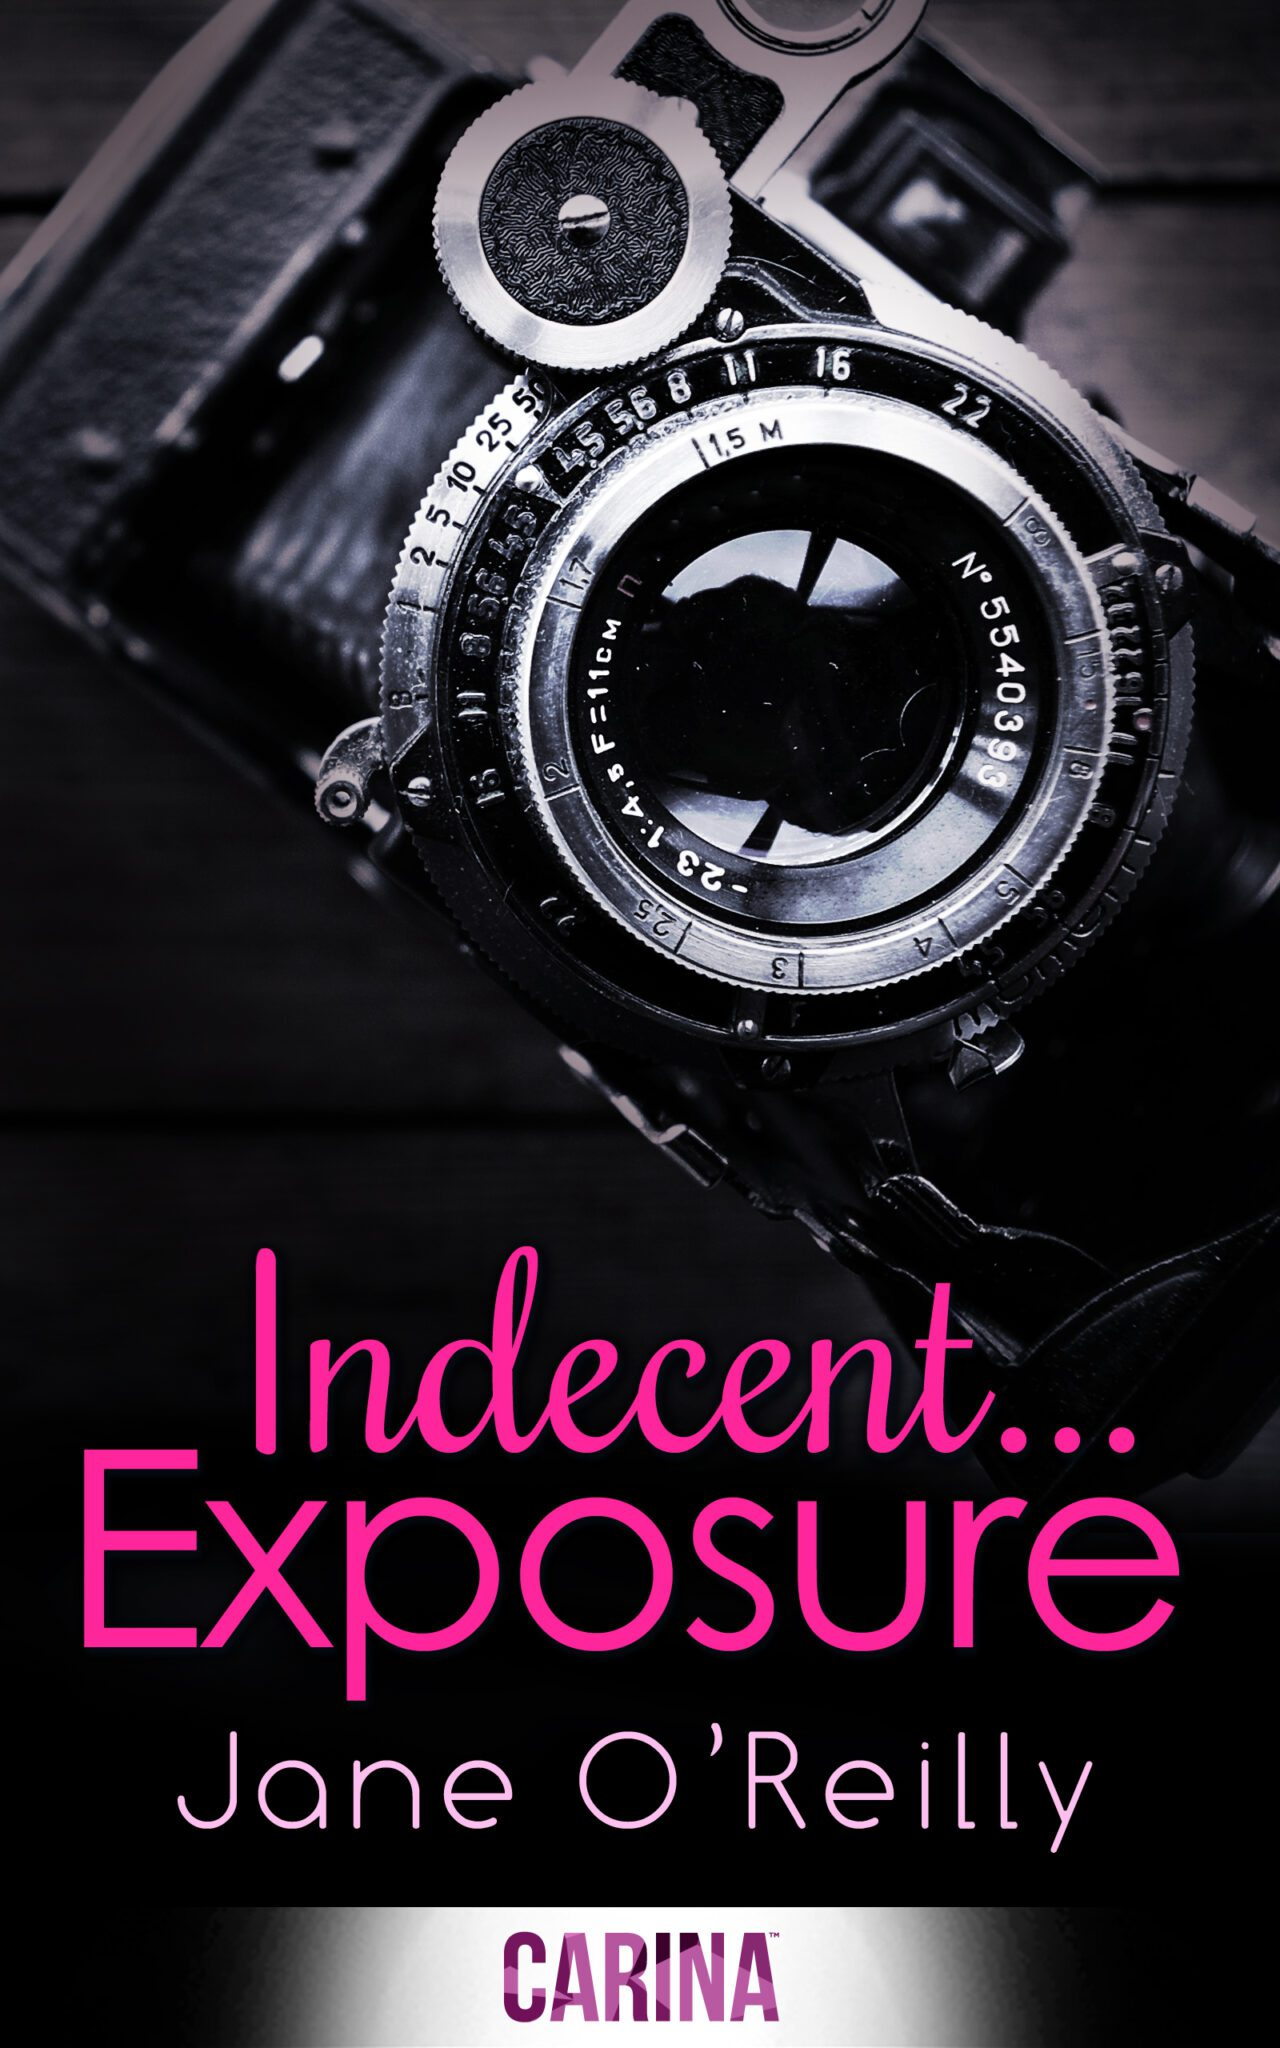 Jane O'Reilly: Five Things I Learned Writing Indecent Exposure